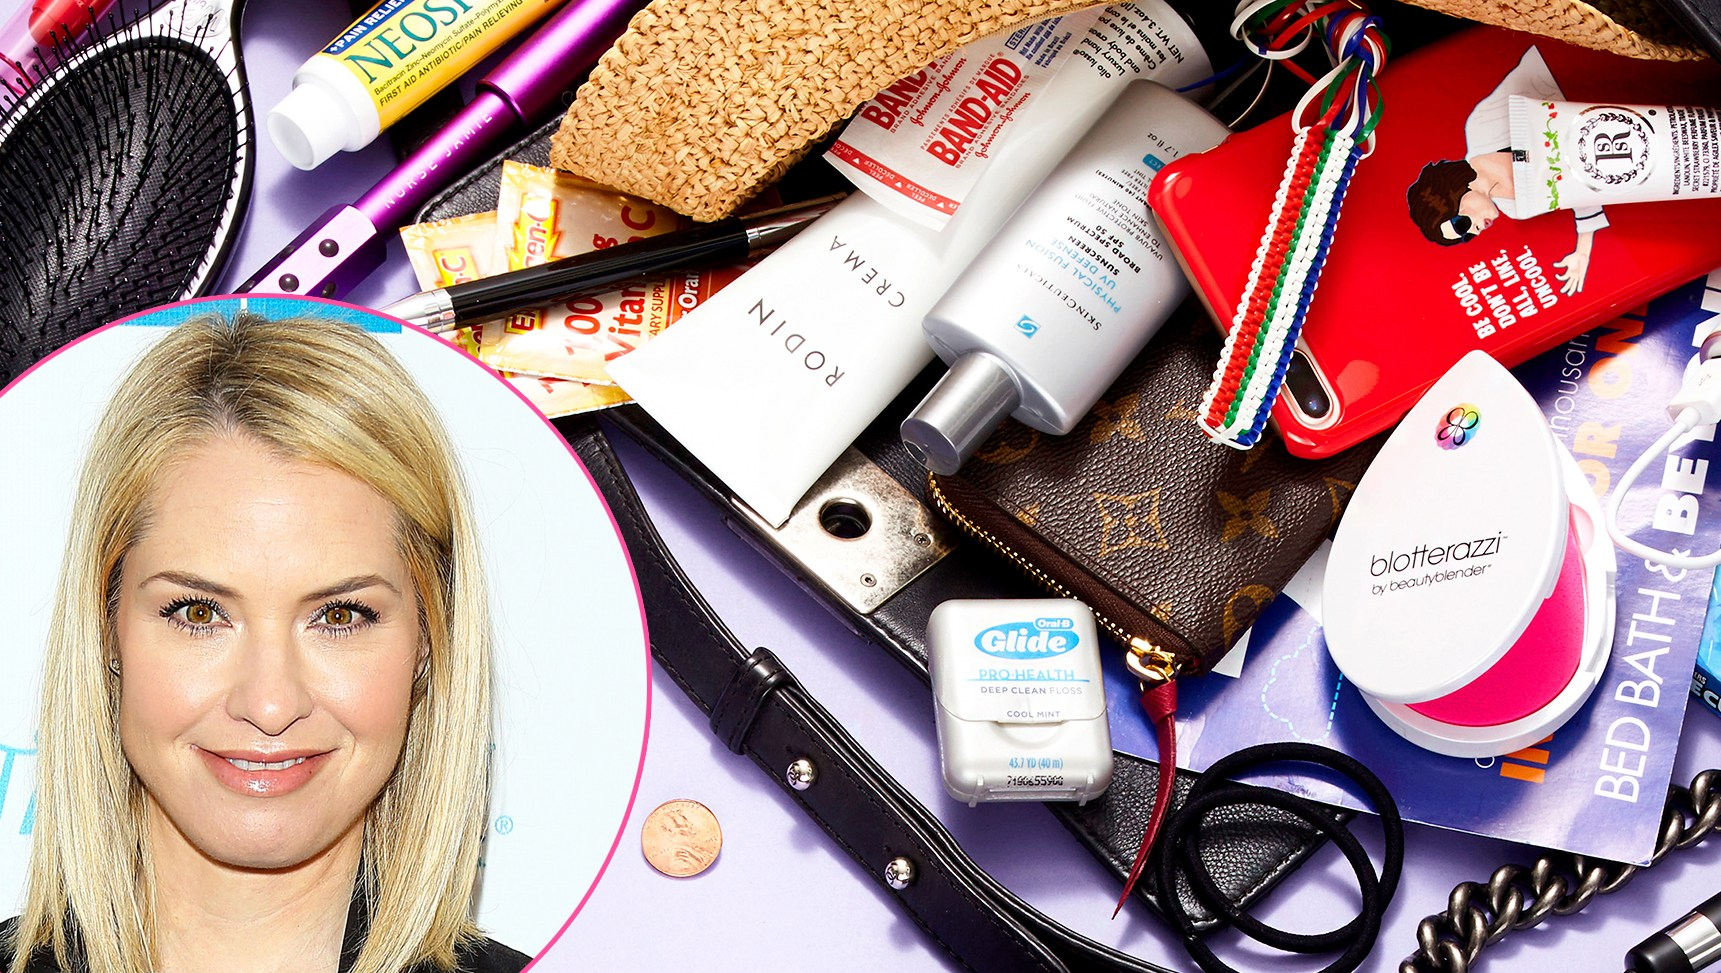 Leslie Grossman Whats In My Bag